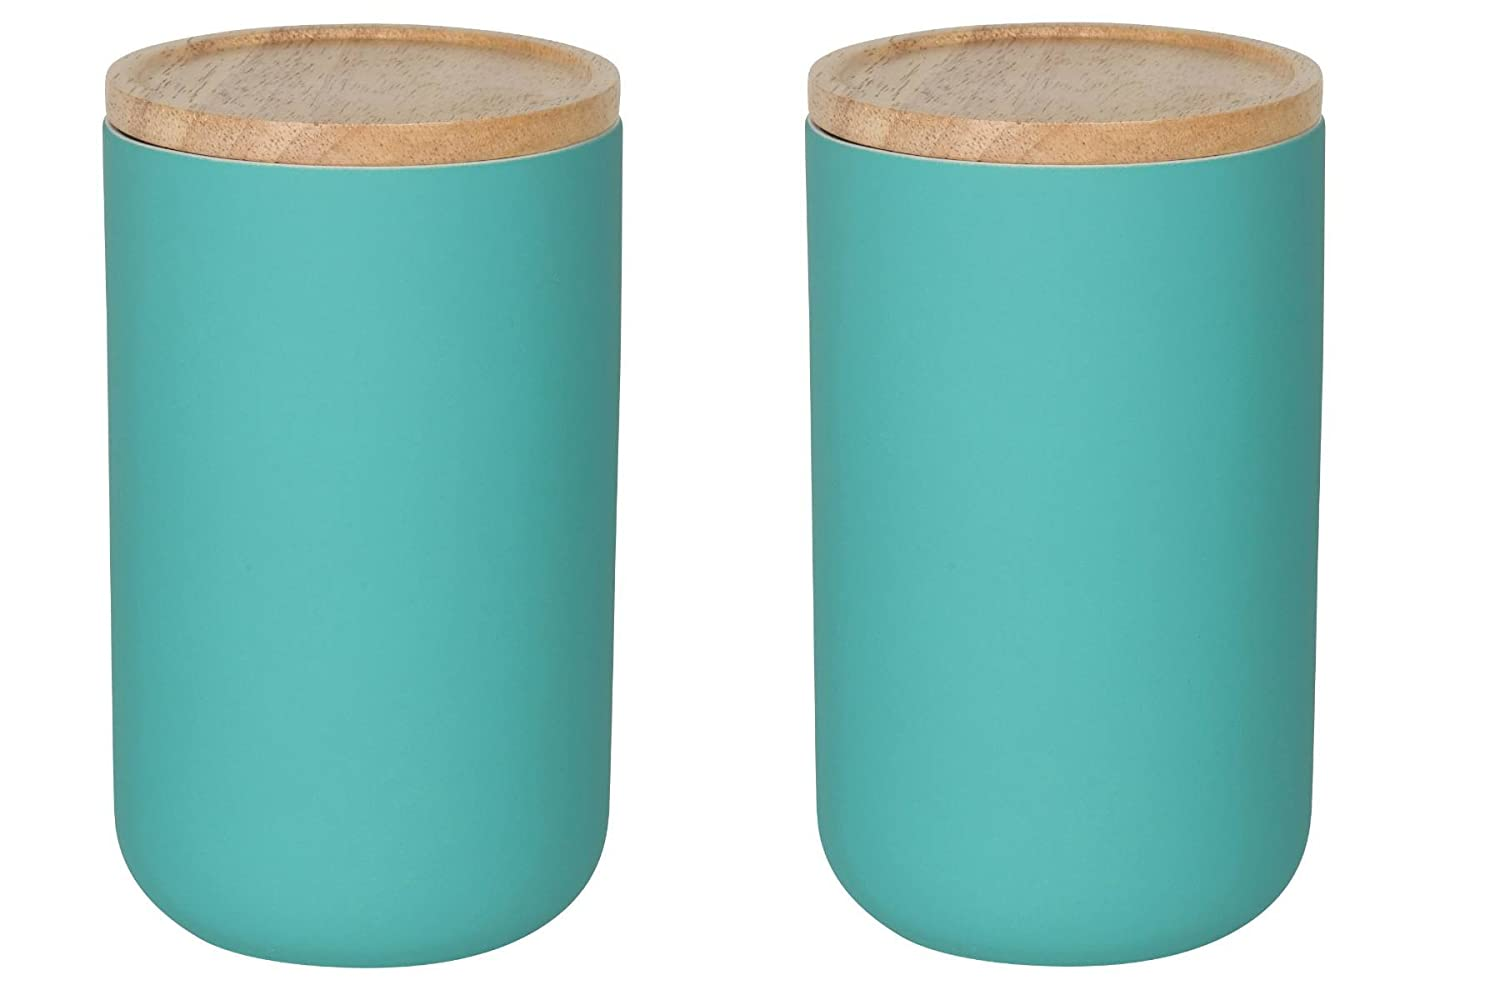 Amazon.com: Now Designs Canister, Large, Lagoon Blue, Set of 2 ...